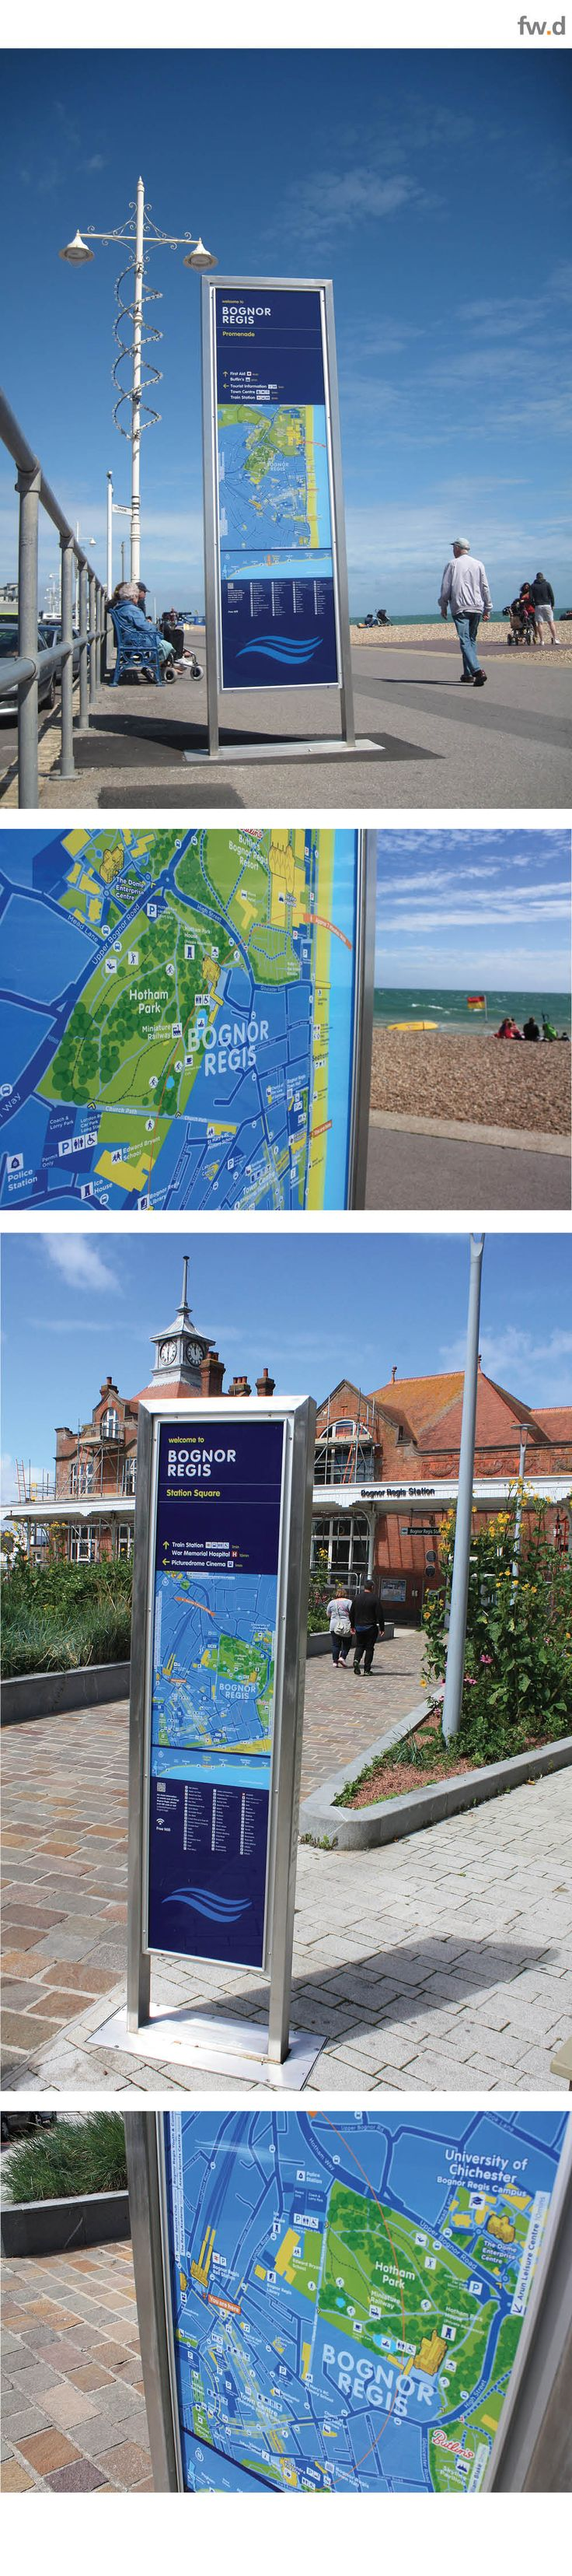 fwdesign were commissioned to deliver a new pedestrian wayfinding system for Bognor Regis that promoted connectivity across the town centre, the seafront and strengthened pedestrian links between Butlins and the town centre. Our 'frank' sign system was selected for his contemporary design aesthetic, material specifications and resulting durability for longevity in the demanding Coastal environment.